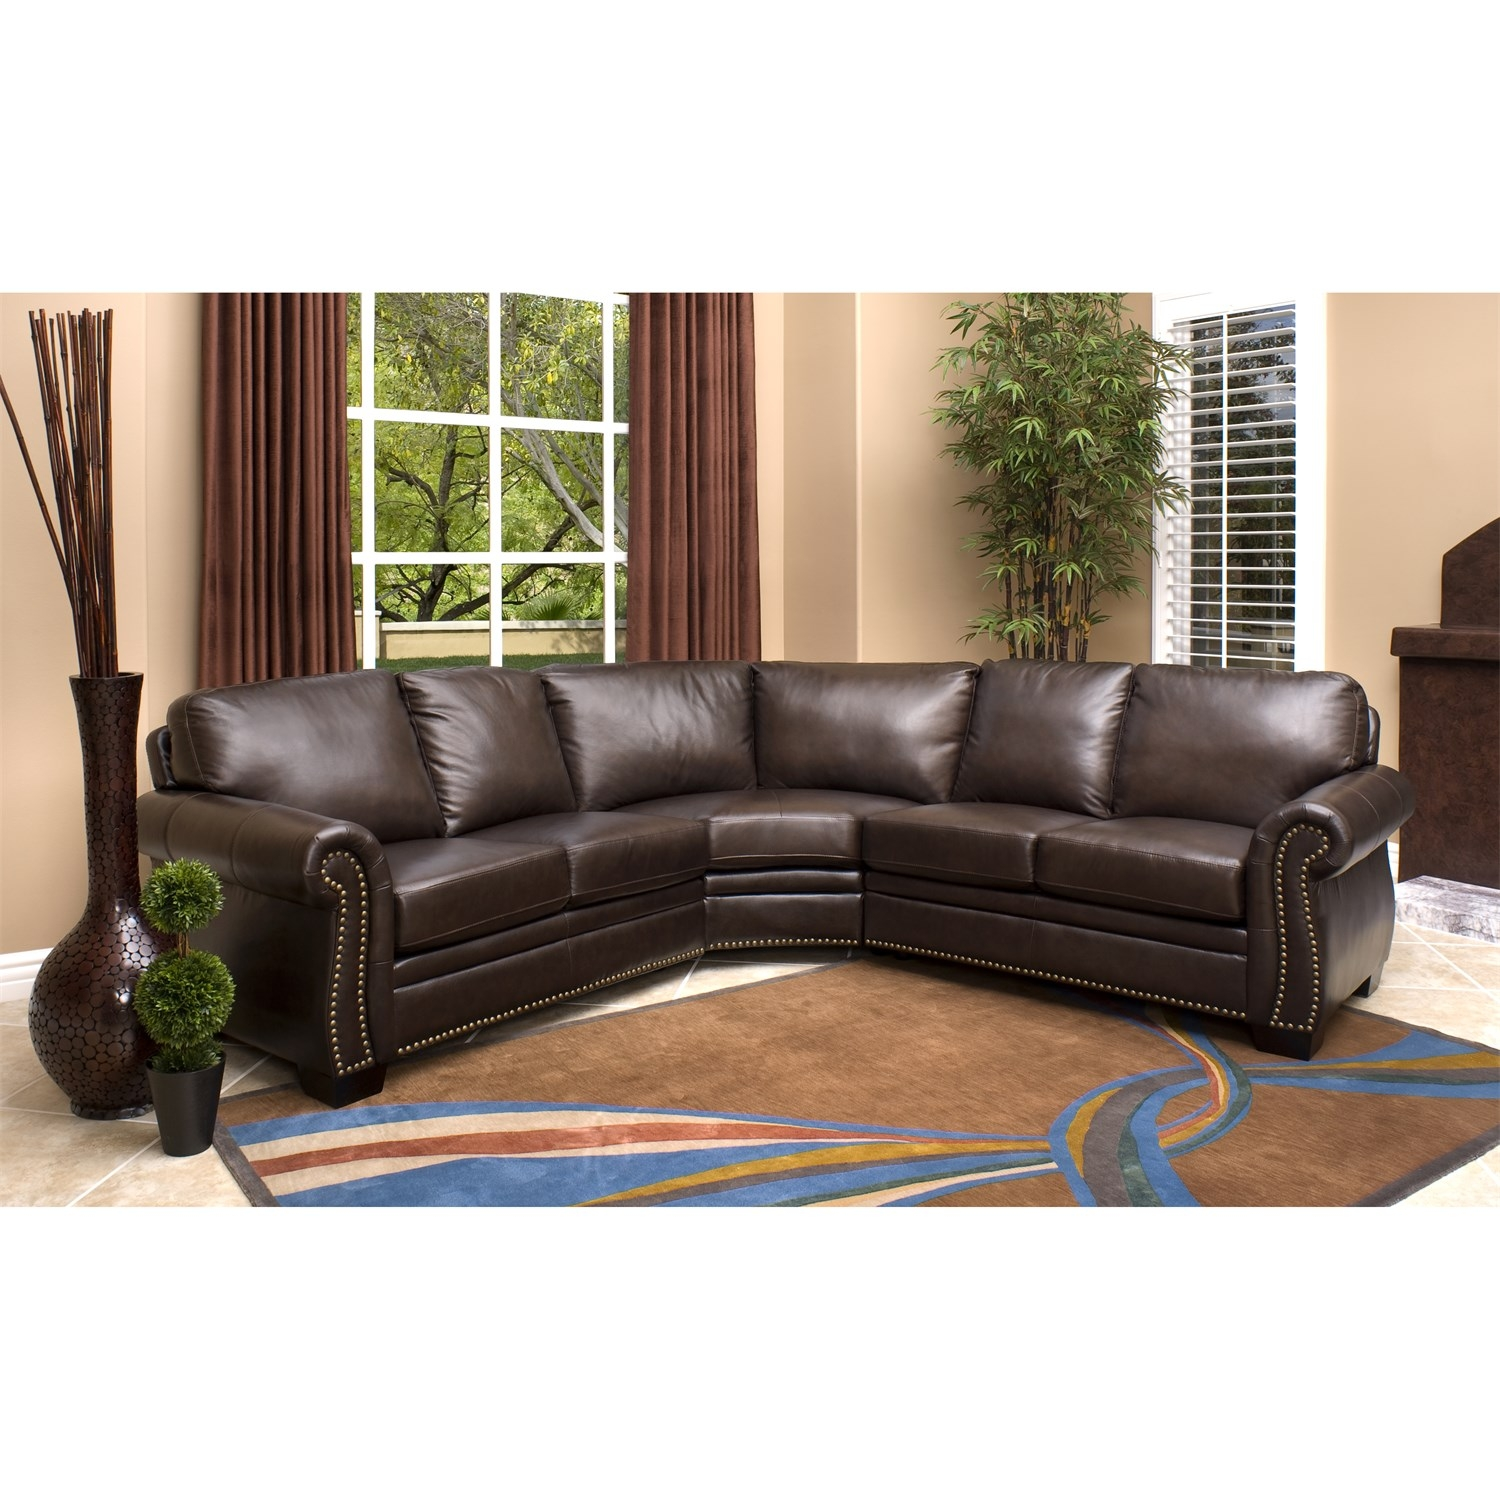 Abson Living Ci N410 Brn Oxford Italian Leather Sectional Sofa Inside Abbyson Sectional Sofa (Image 1 of 15)